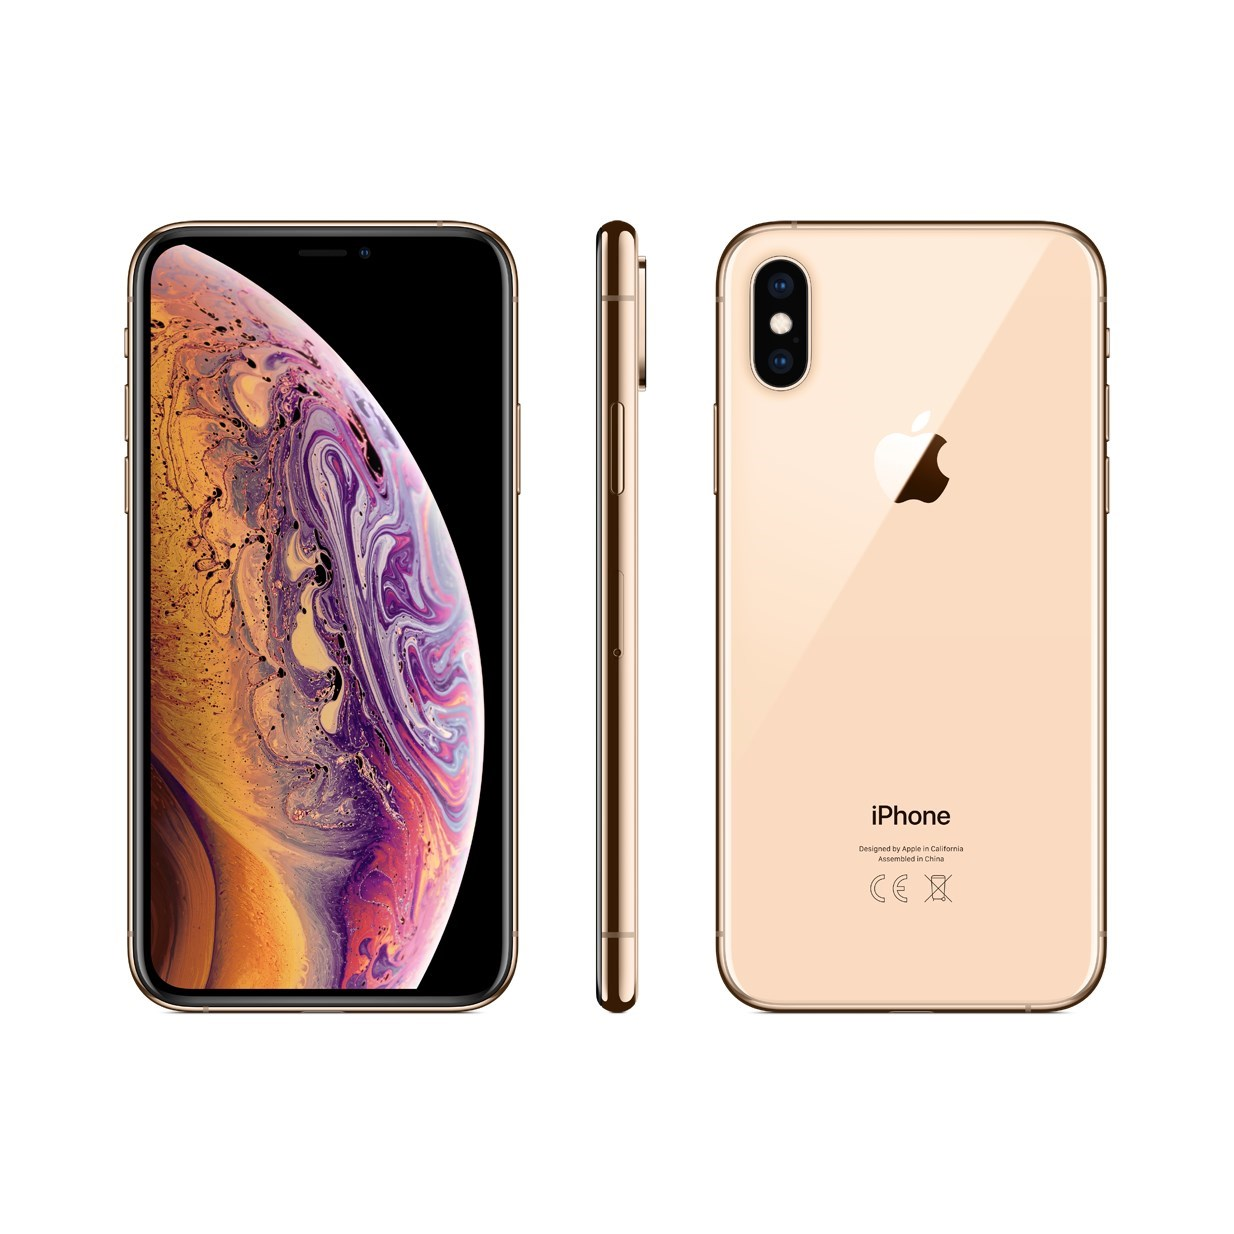 Image of Apple iPhone XS Max 256GB Dual Sim (2 nano-SIM) SIM FREE/ UNLOCKED A2104 - Gold